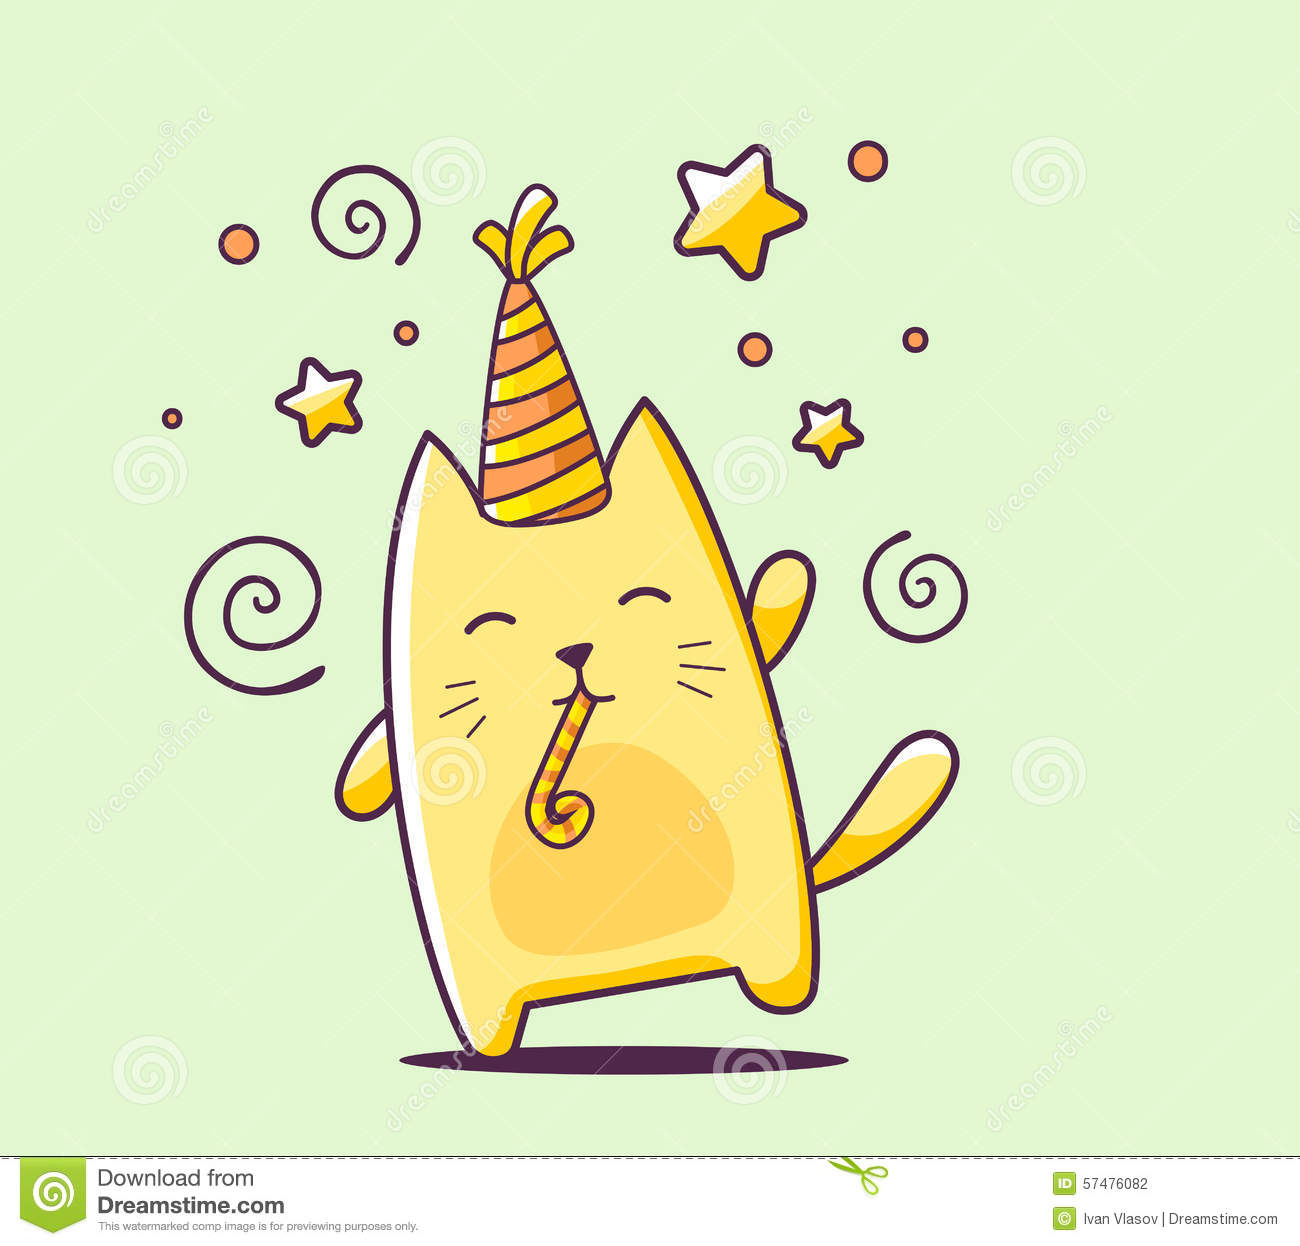 cute birthday drawings ; vector-illustration-color-happy-character-cat-hat-bl-blowout-green-background-hand-draw-line-art-design-web-57476082